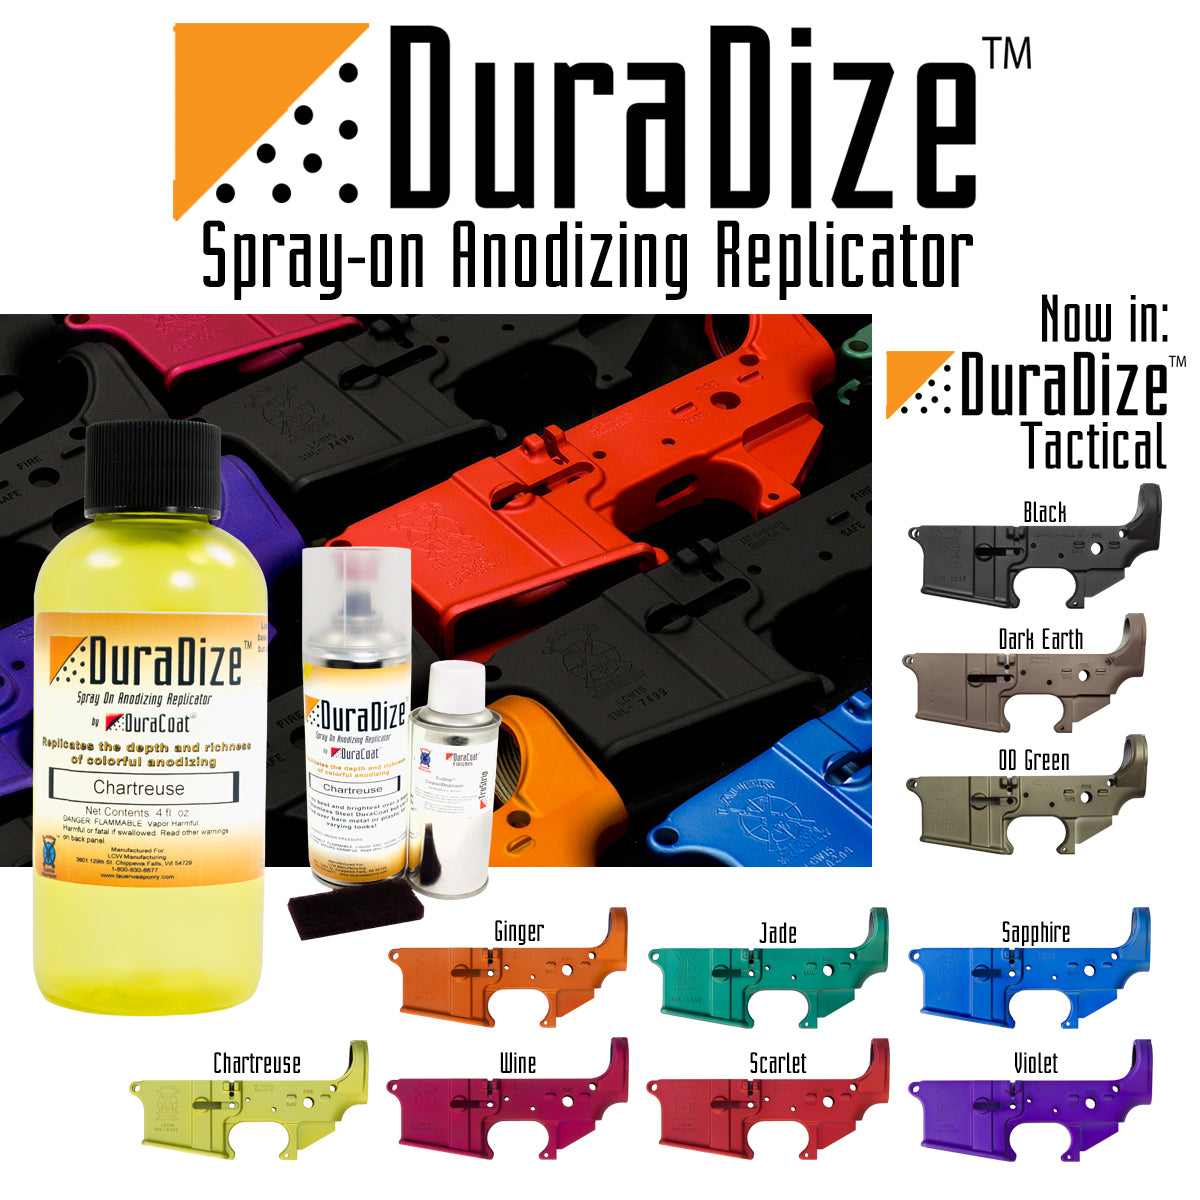 DuraDize™ Spray-On Anodizing Replicator